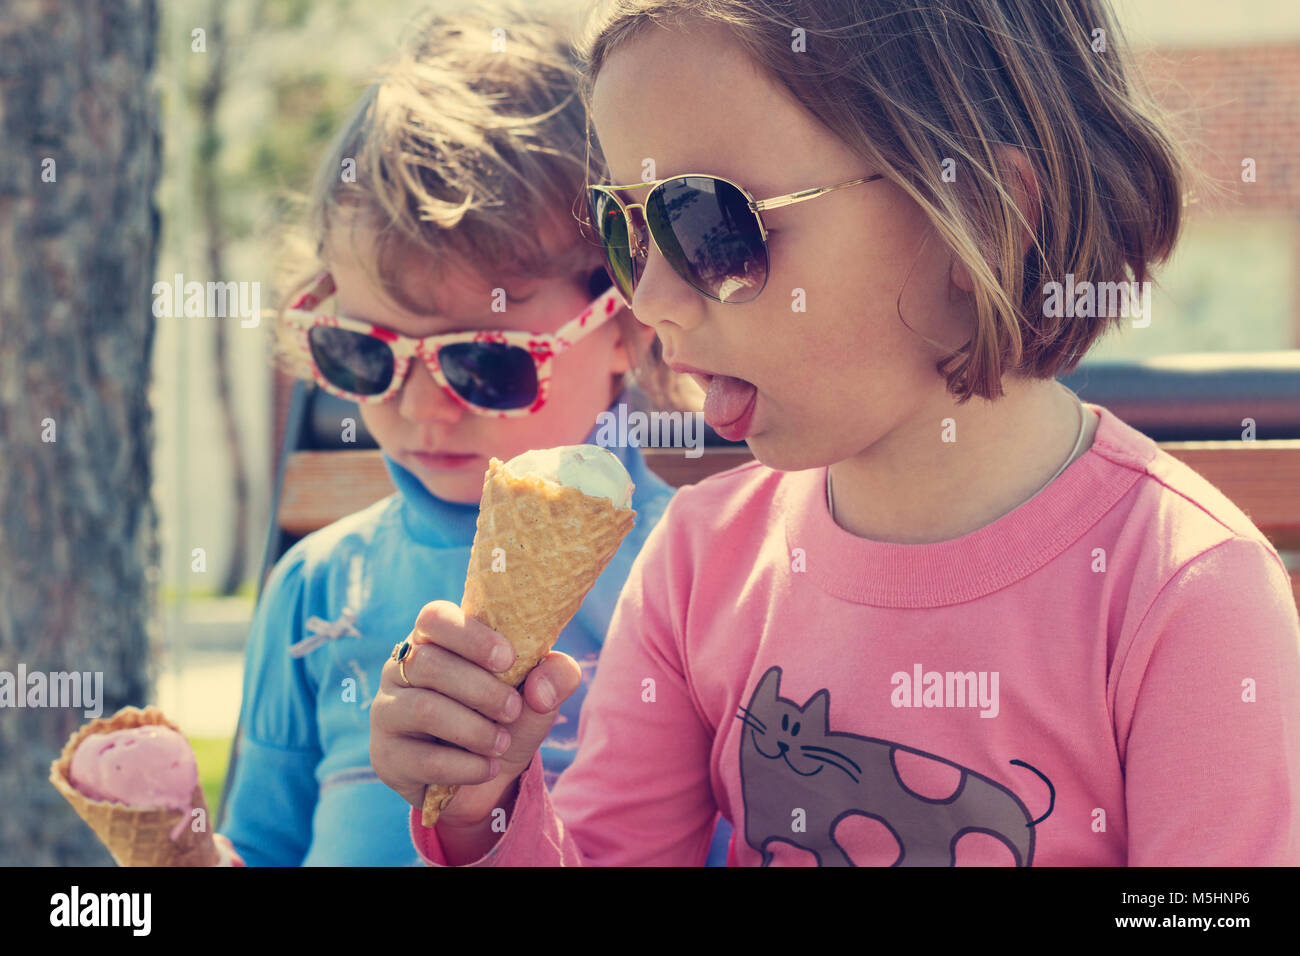 Two little girls (sisters) eating ice cream. - Stock Image